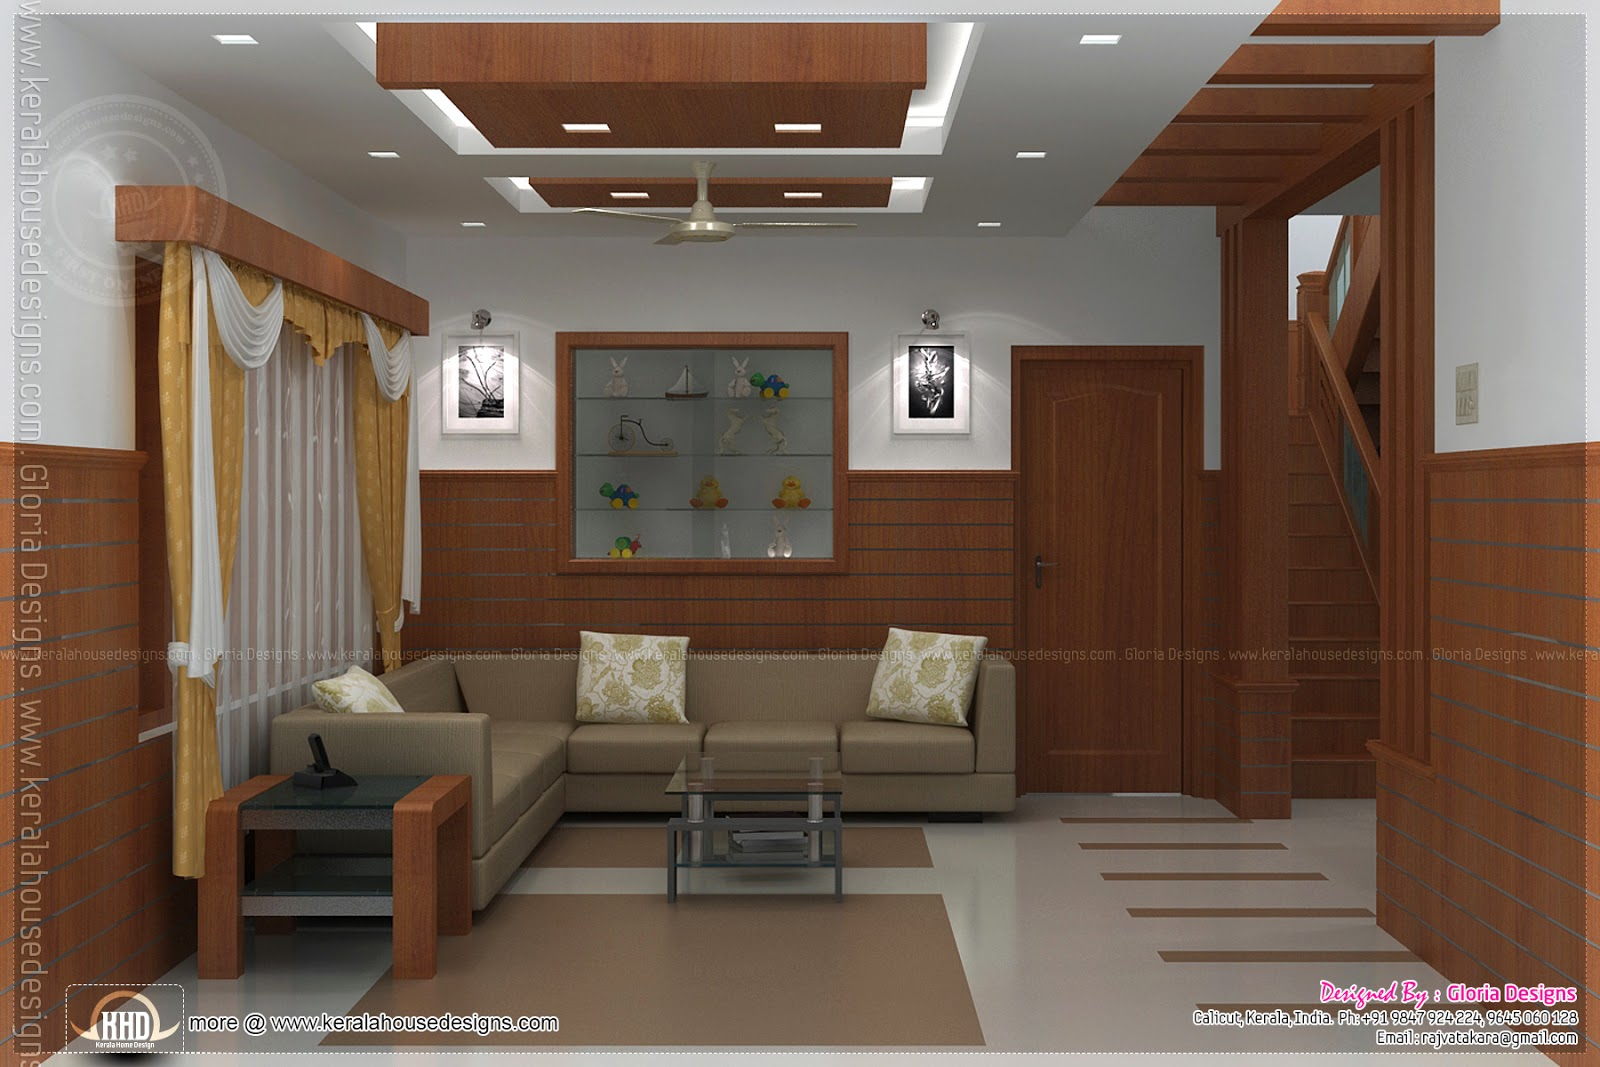 Simple house interior designs in kerala for Simple house interior design ideas